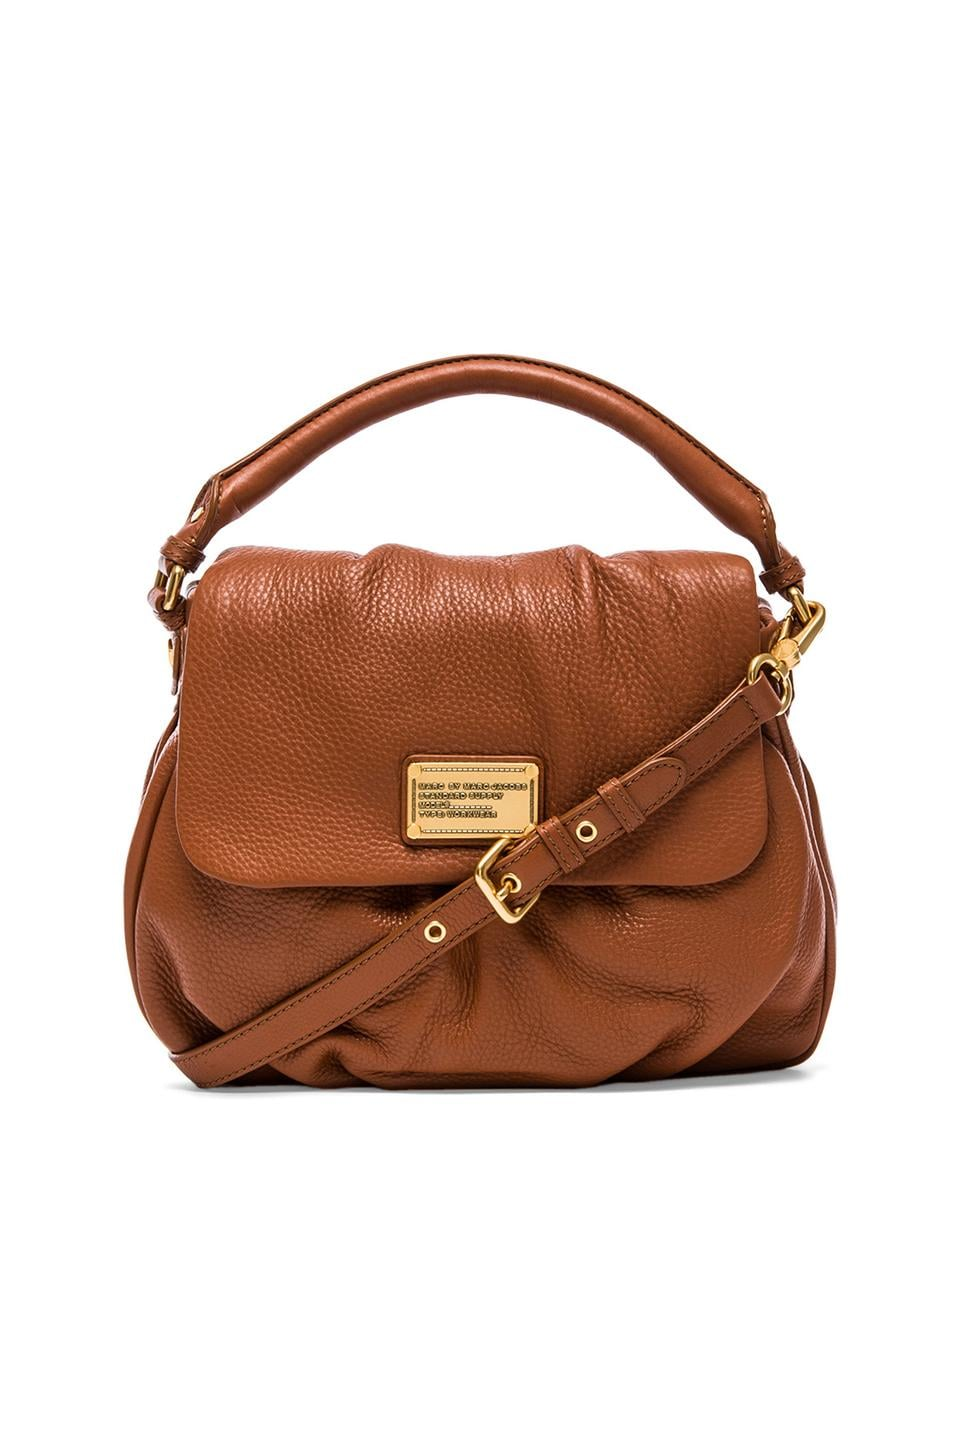 Marc by Marc Jacobs Classic Q Lil Ukita in Smoked Almond